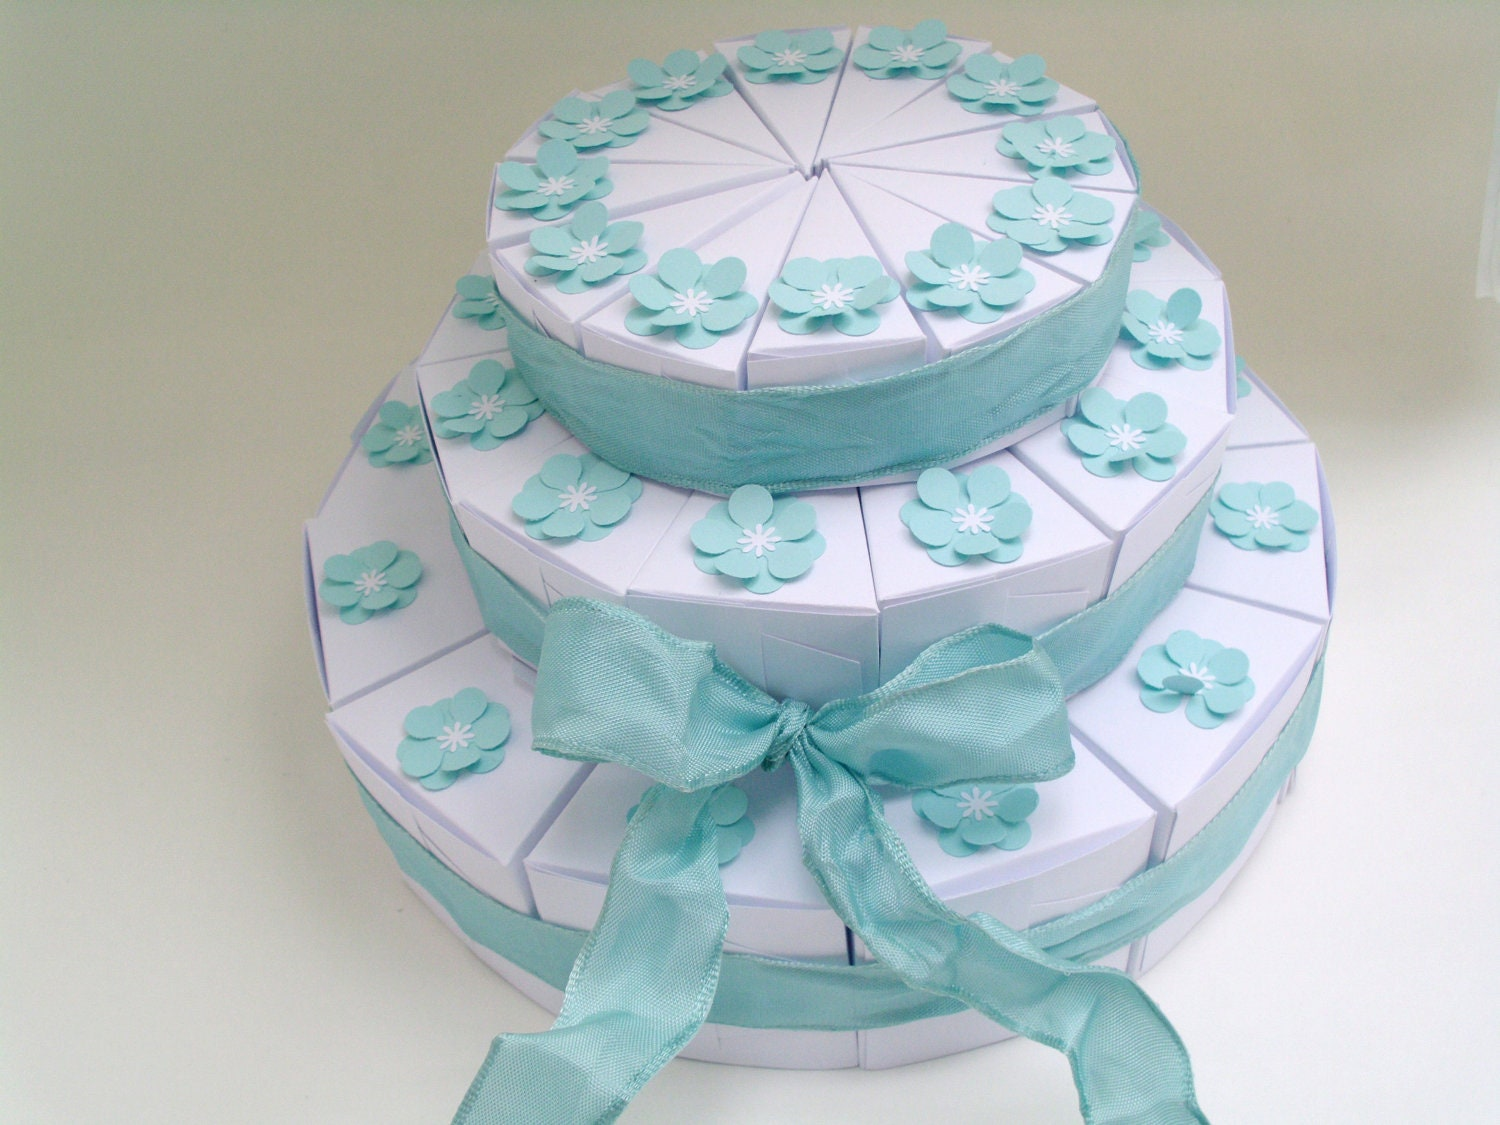 Wedding Gift Cake: Items Similar To 36 White Or Ivory 3-tiered Wedding Favor